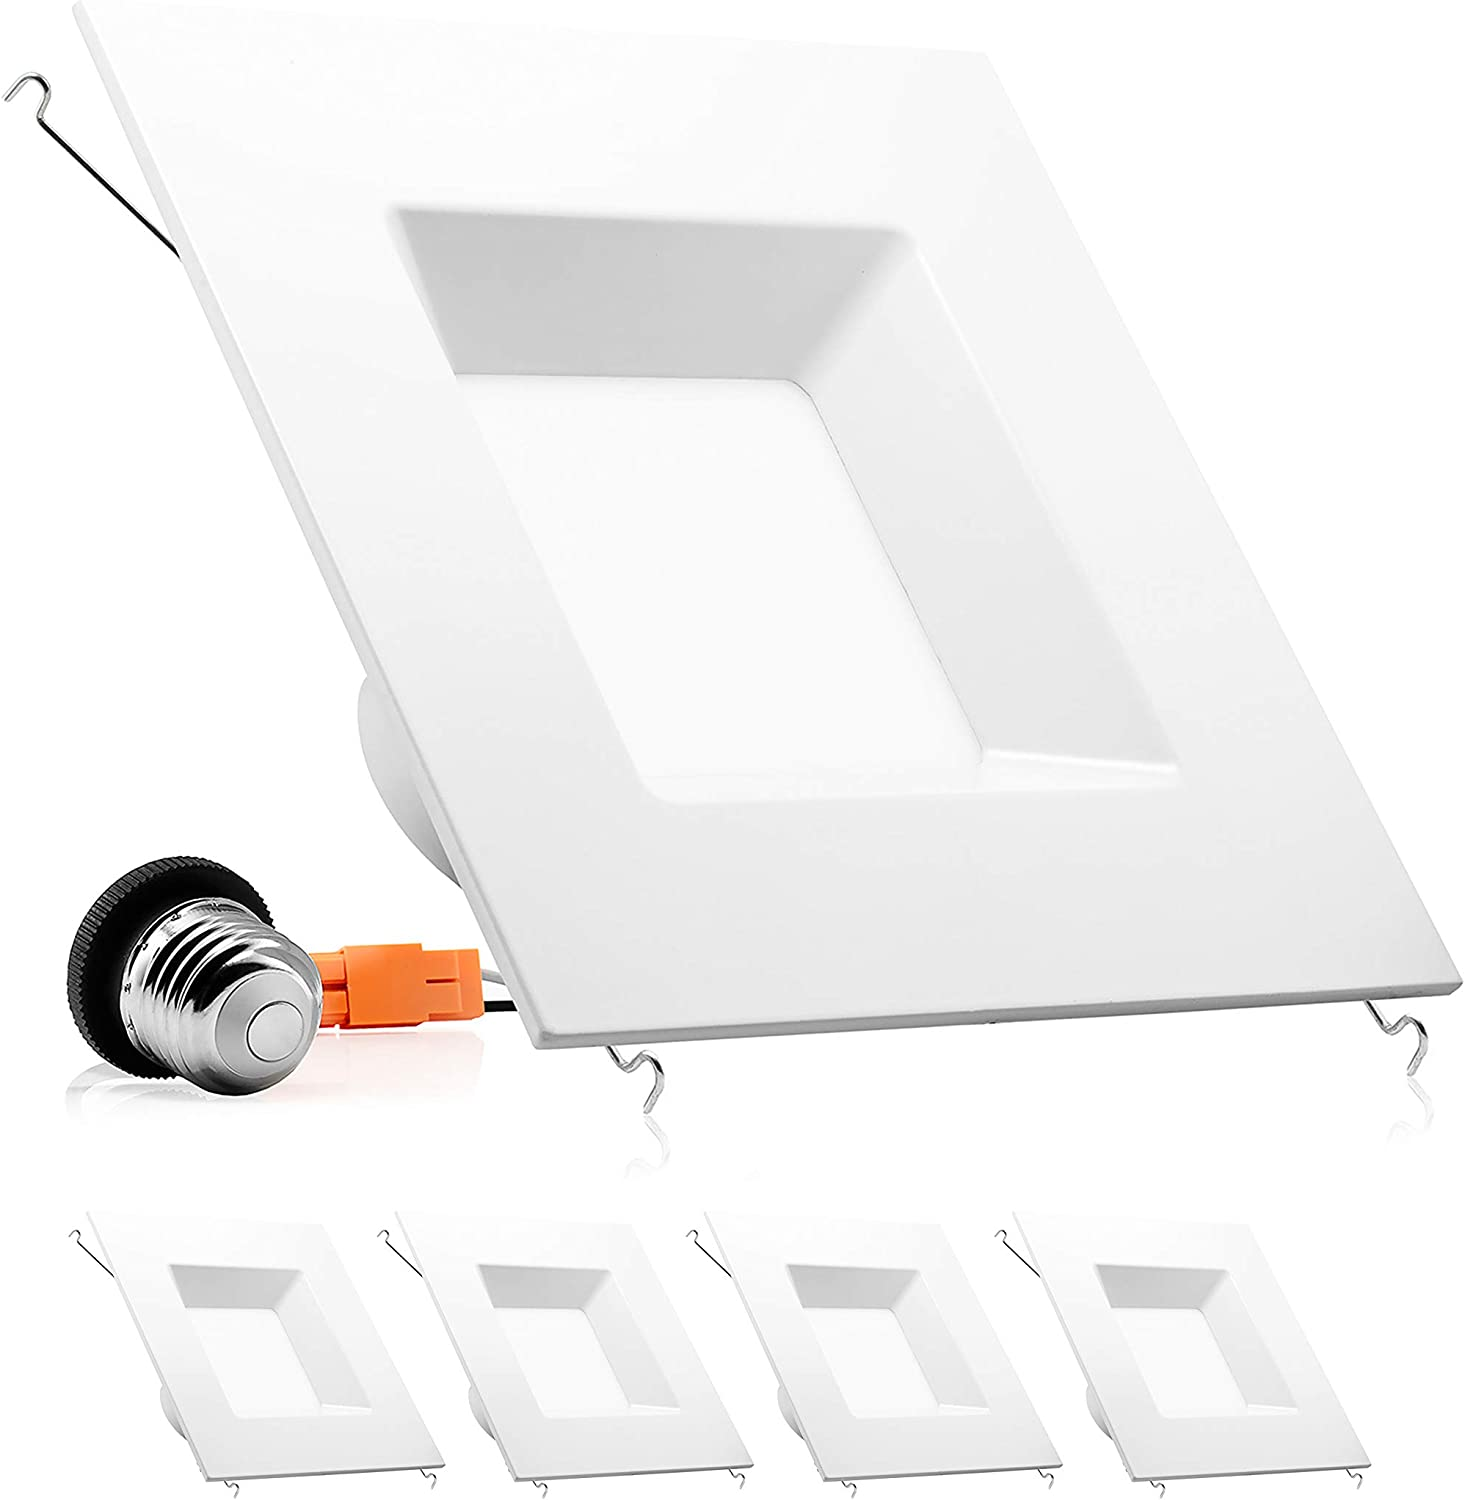 Parmida (4 Pack) 6 inch Dimmable LED Retrofit Recessed Downlight, 15W (100W Replacement), Square Trim, 3000K (Soft White), 1040LM, Energy Star & ETL, LED Ceiling Can Light Fixture